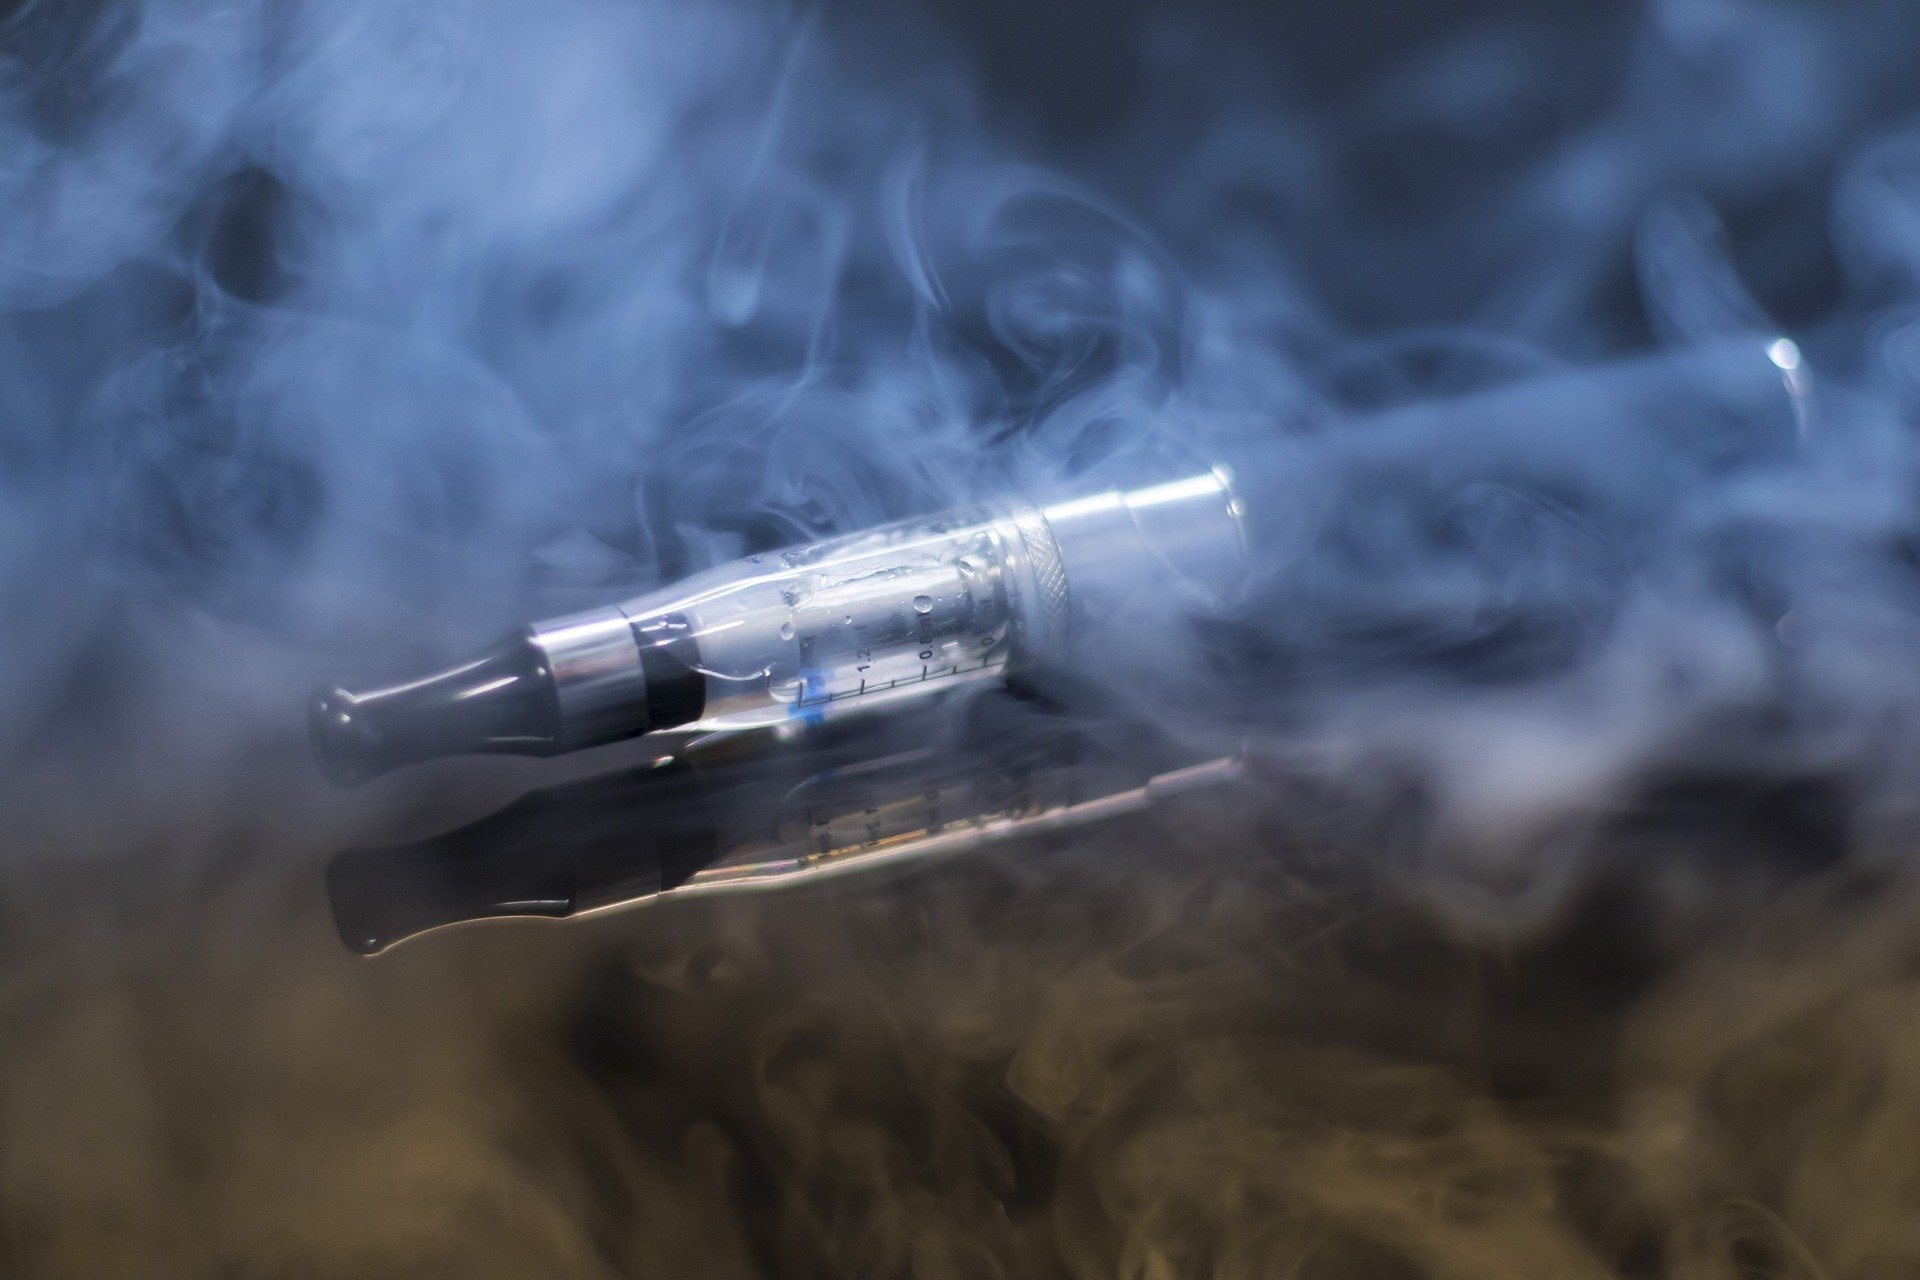 Where Are Teens Getting Their Electronic Cigarettes?